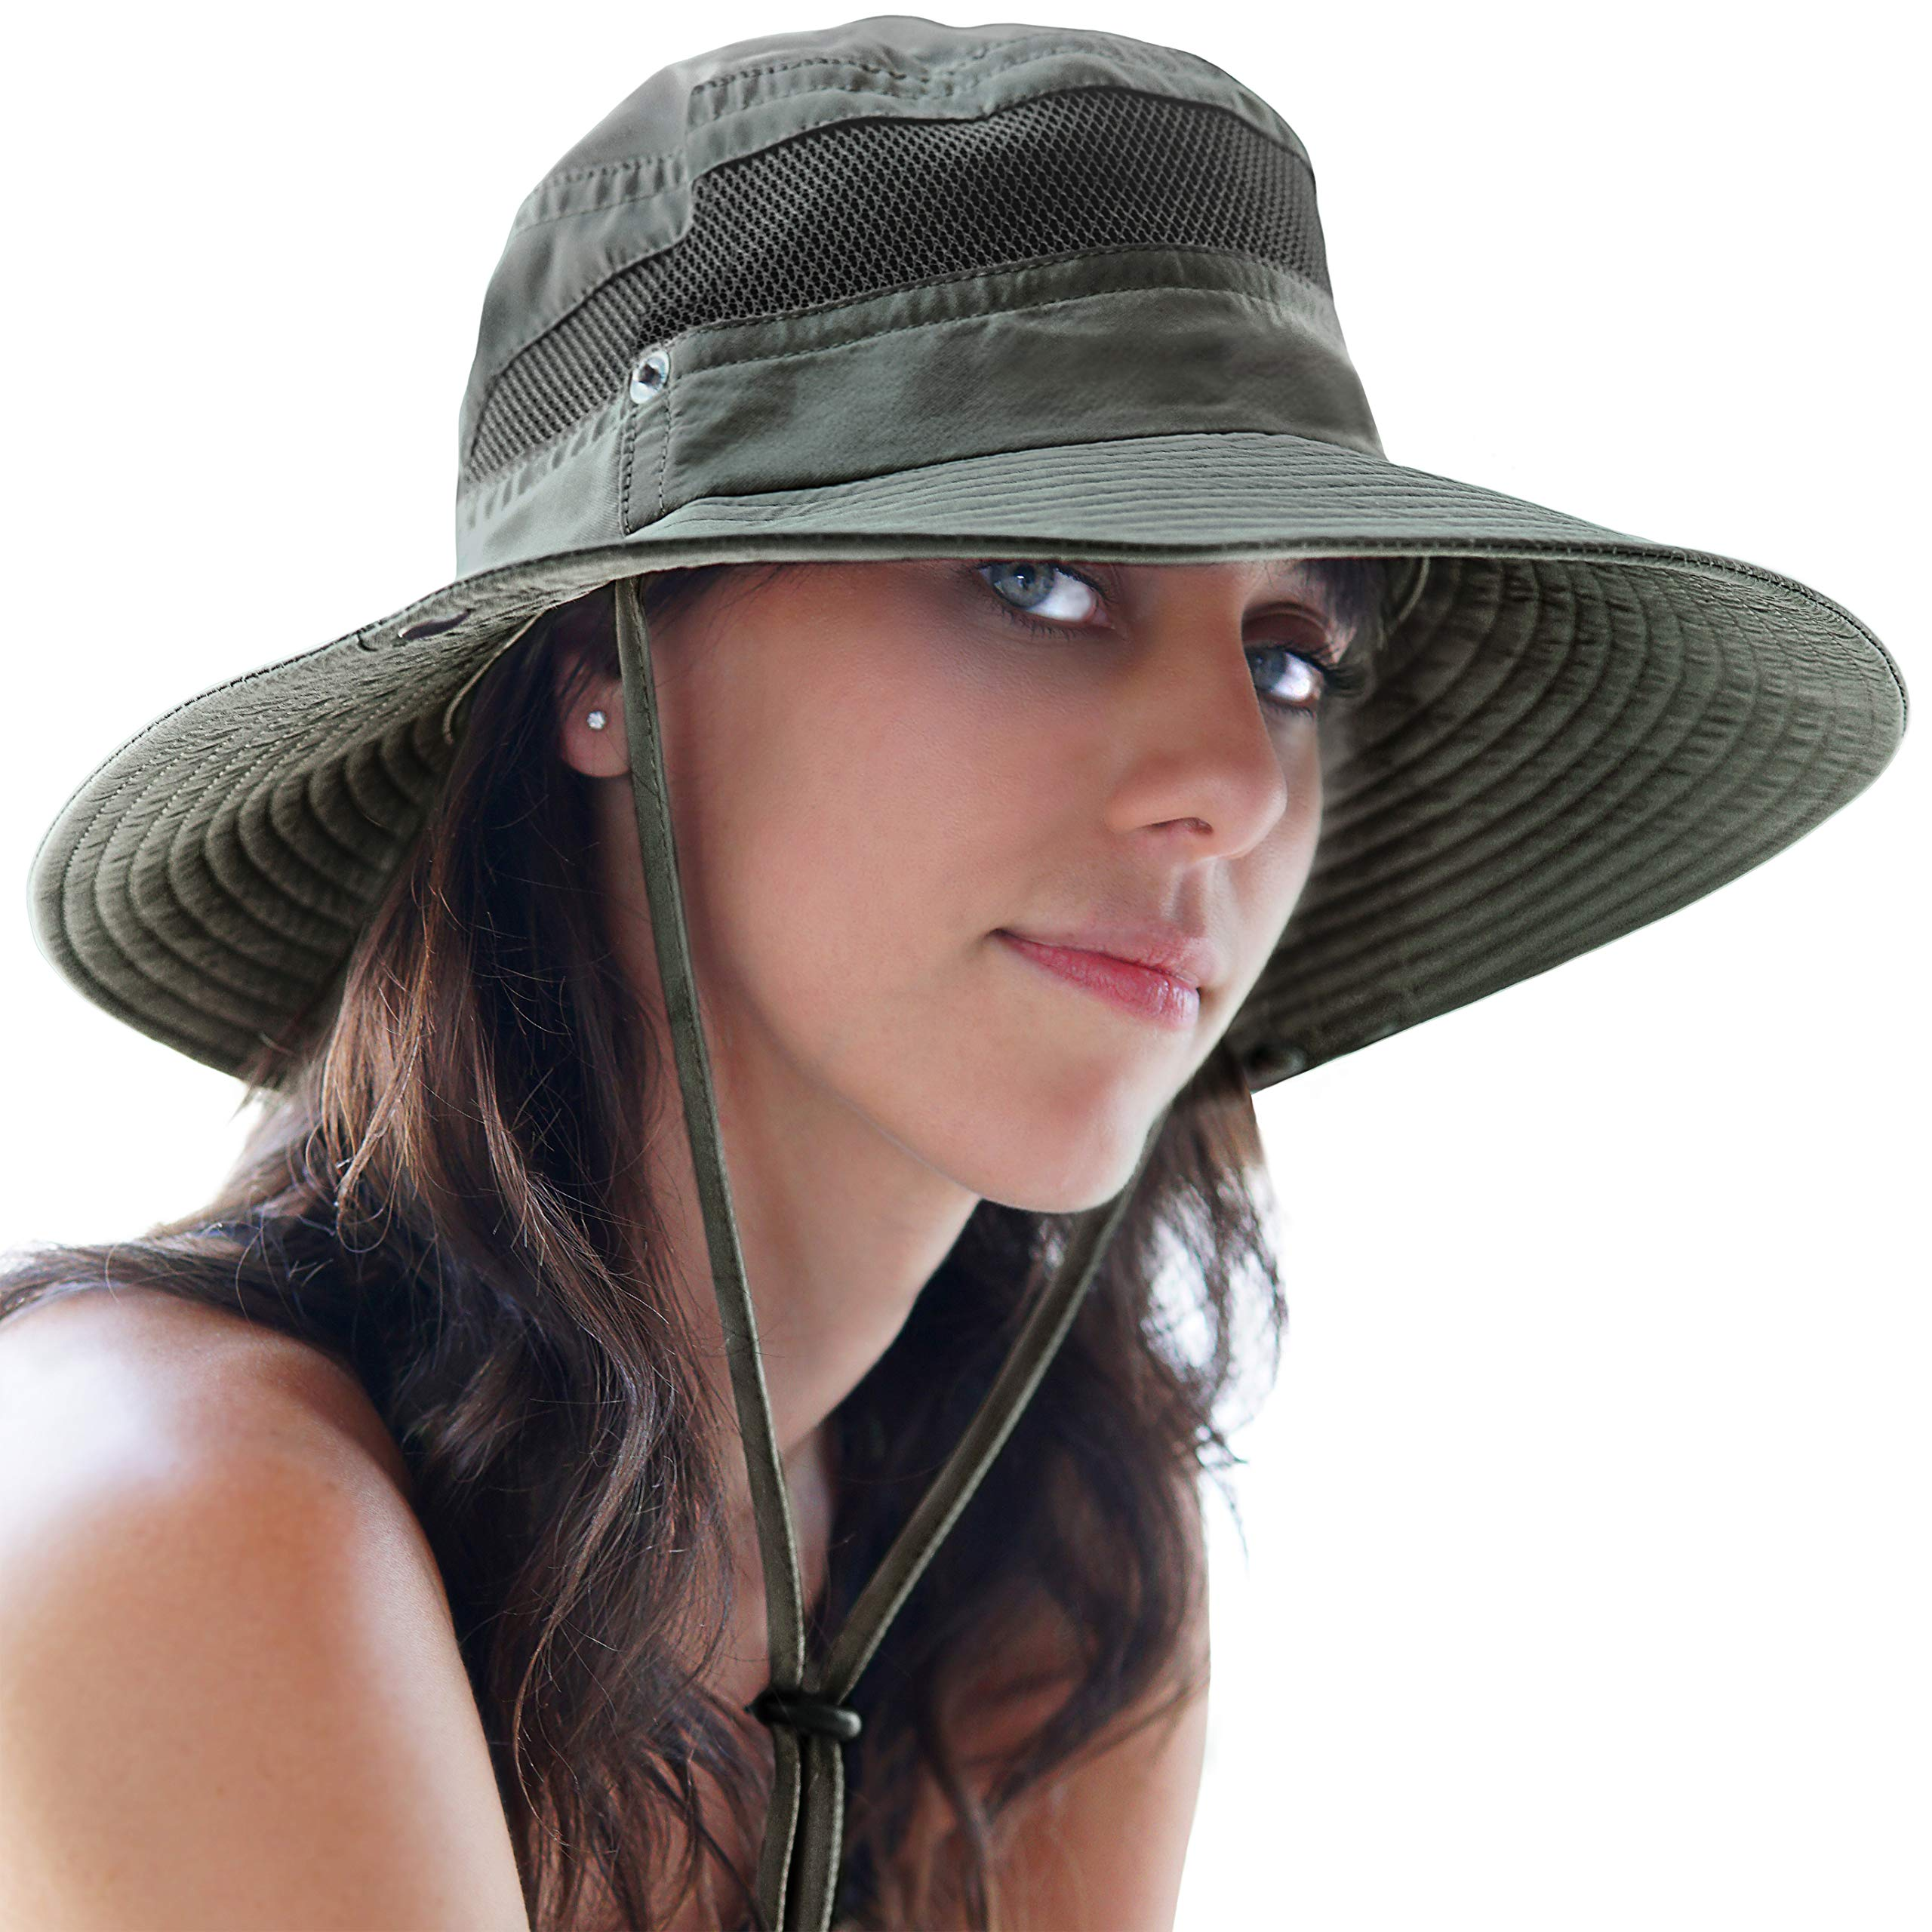 GearTOP Fishing Hat and Safari Cap with Sun Protection | Premium Hats for Men and Women (Army Green - 2 Pack) by GearTOP (Image #9)